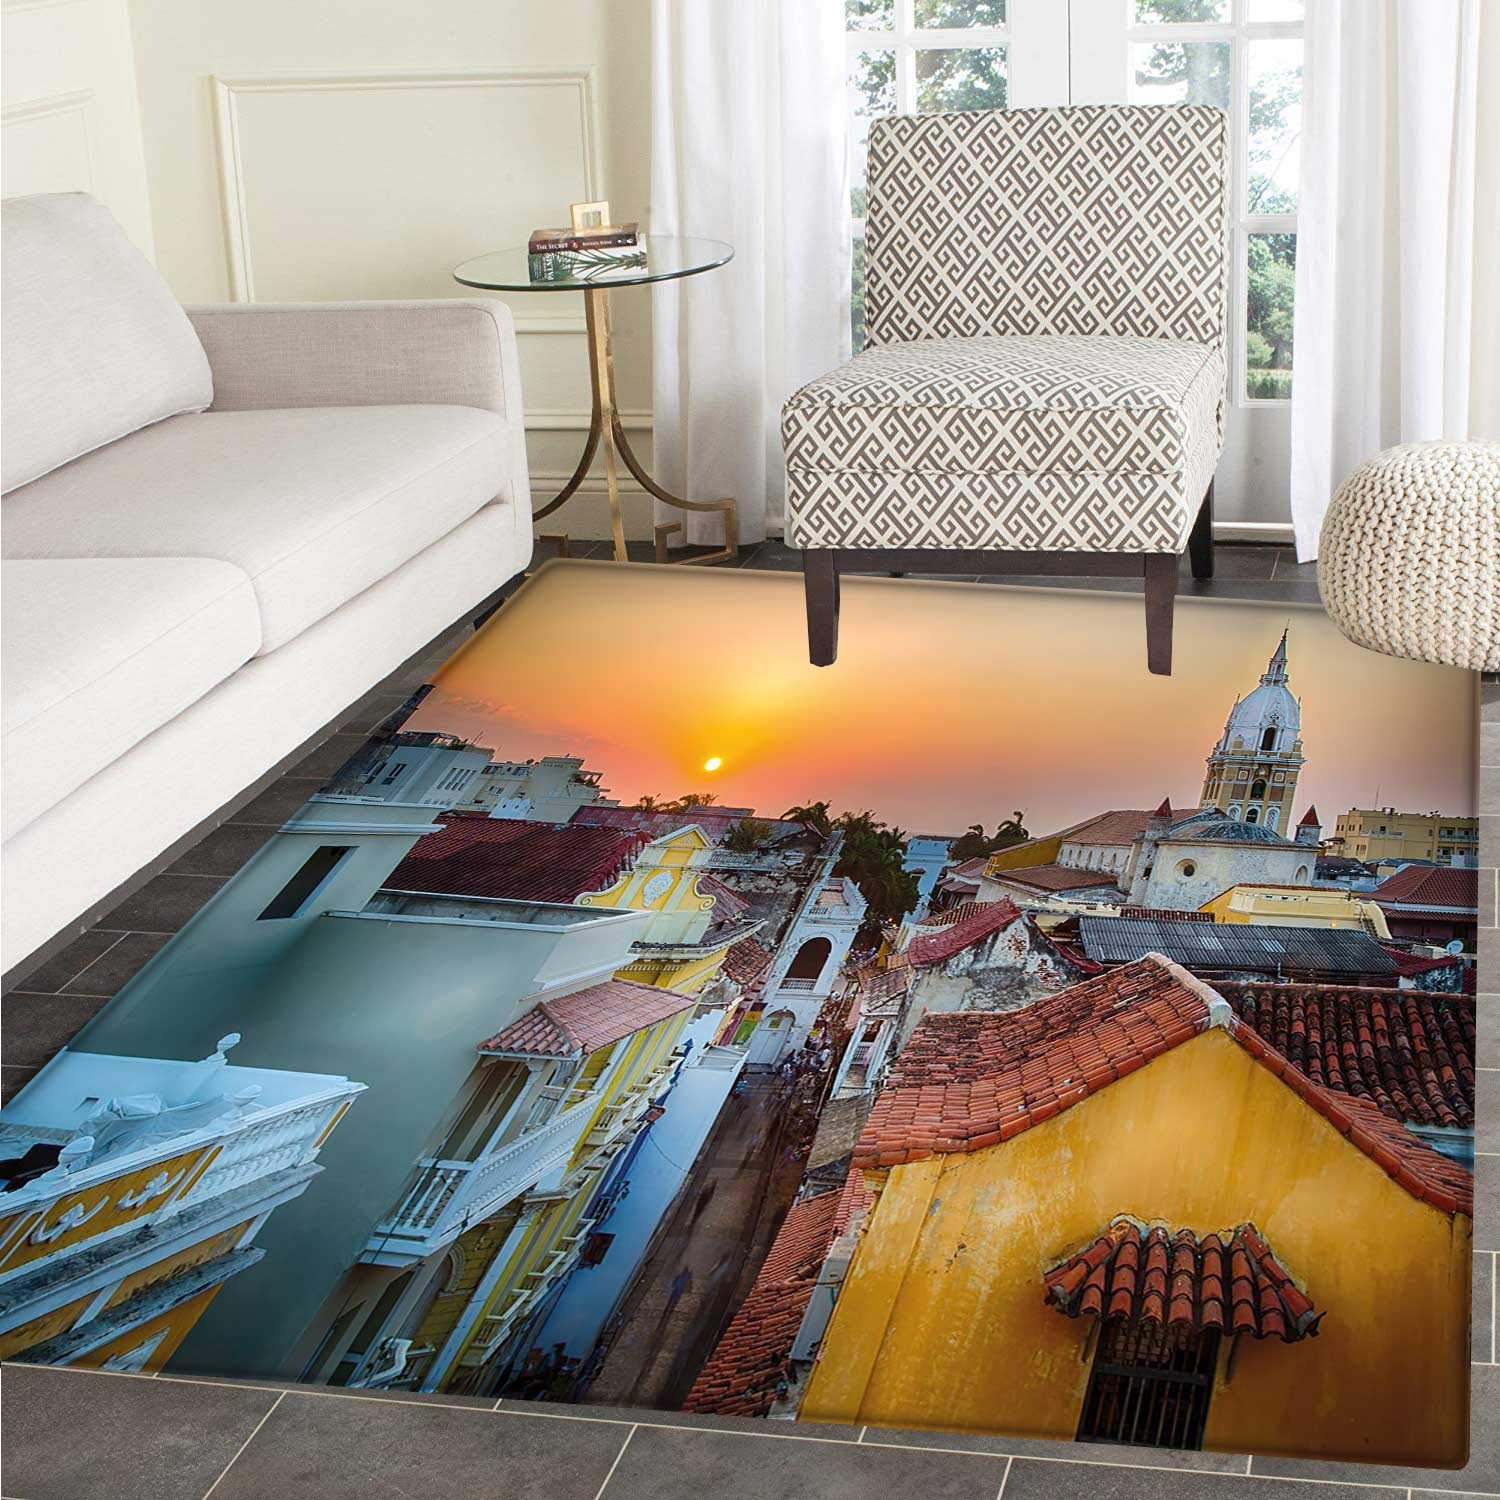 Amazon.com: Sunset Customize Floor mats for home Mat View ...